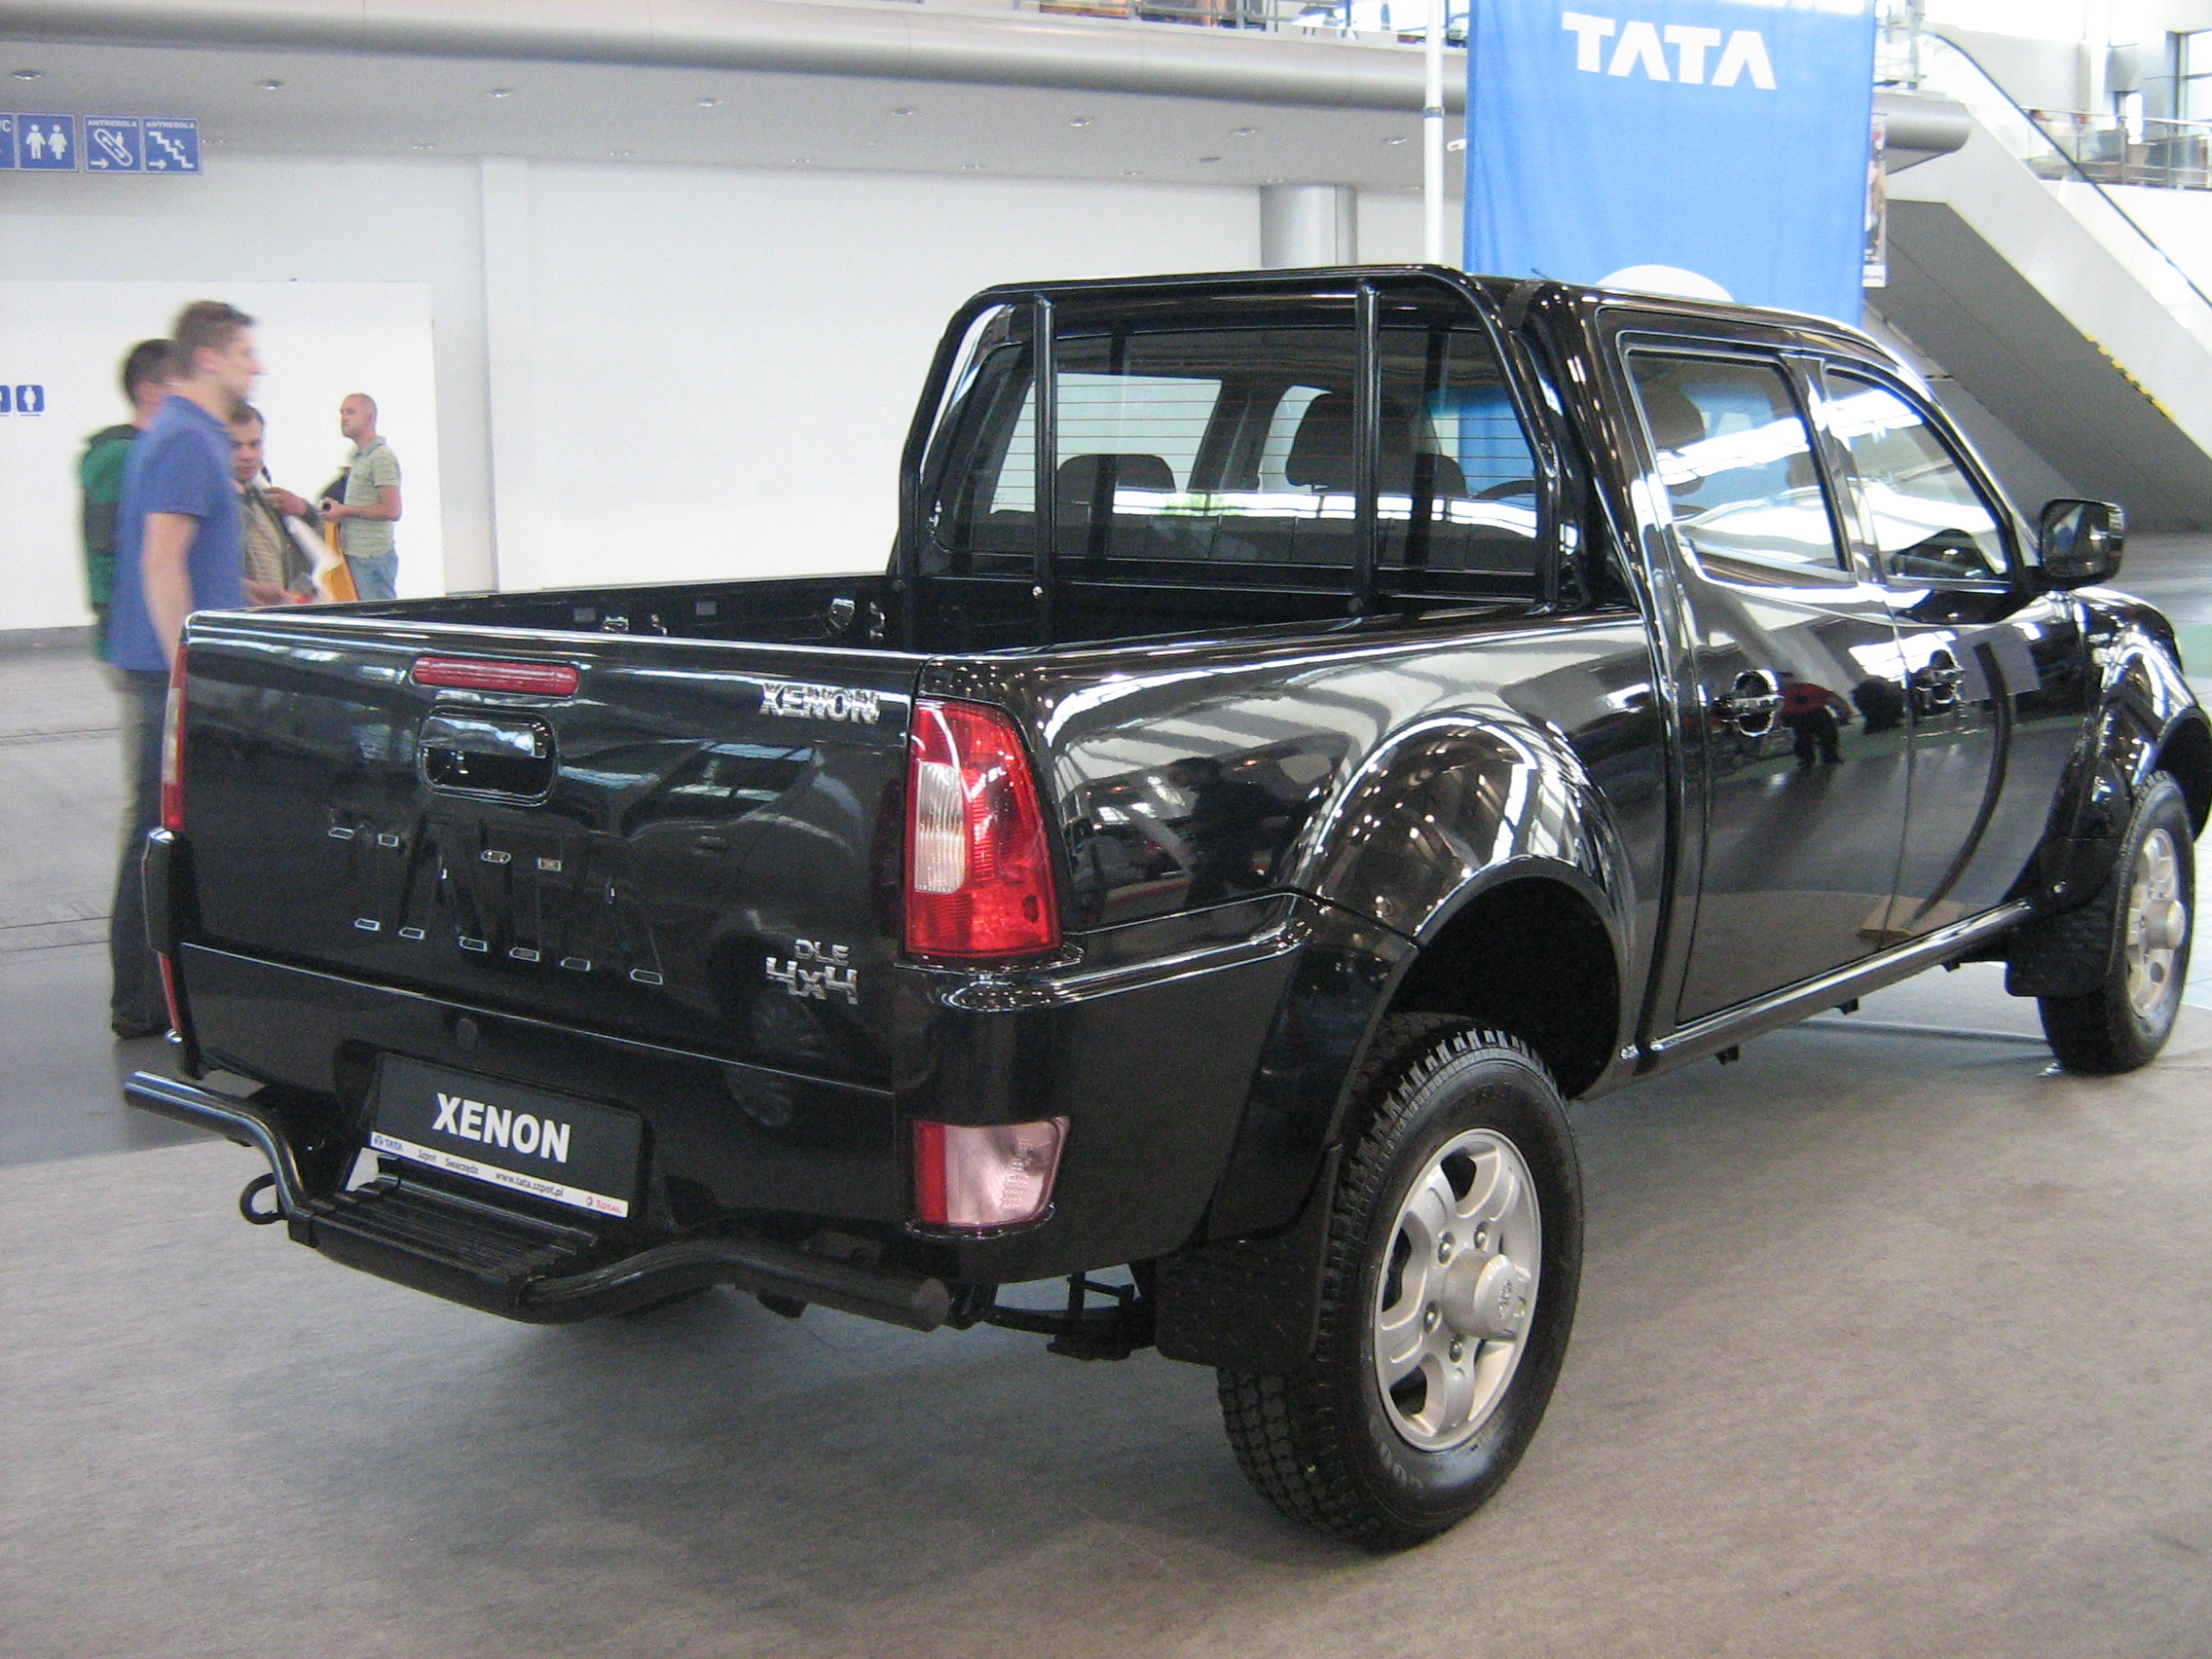 Tata xenon photo - 1